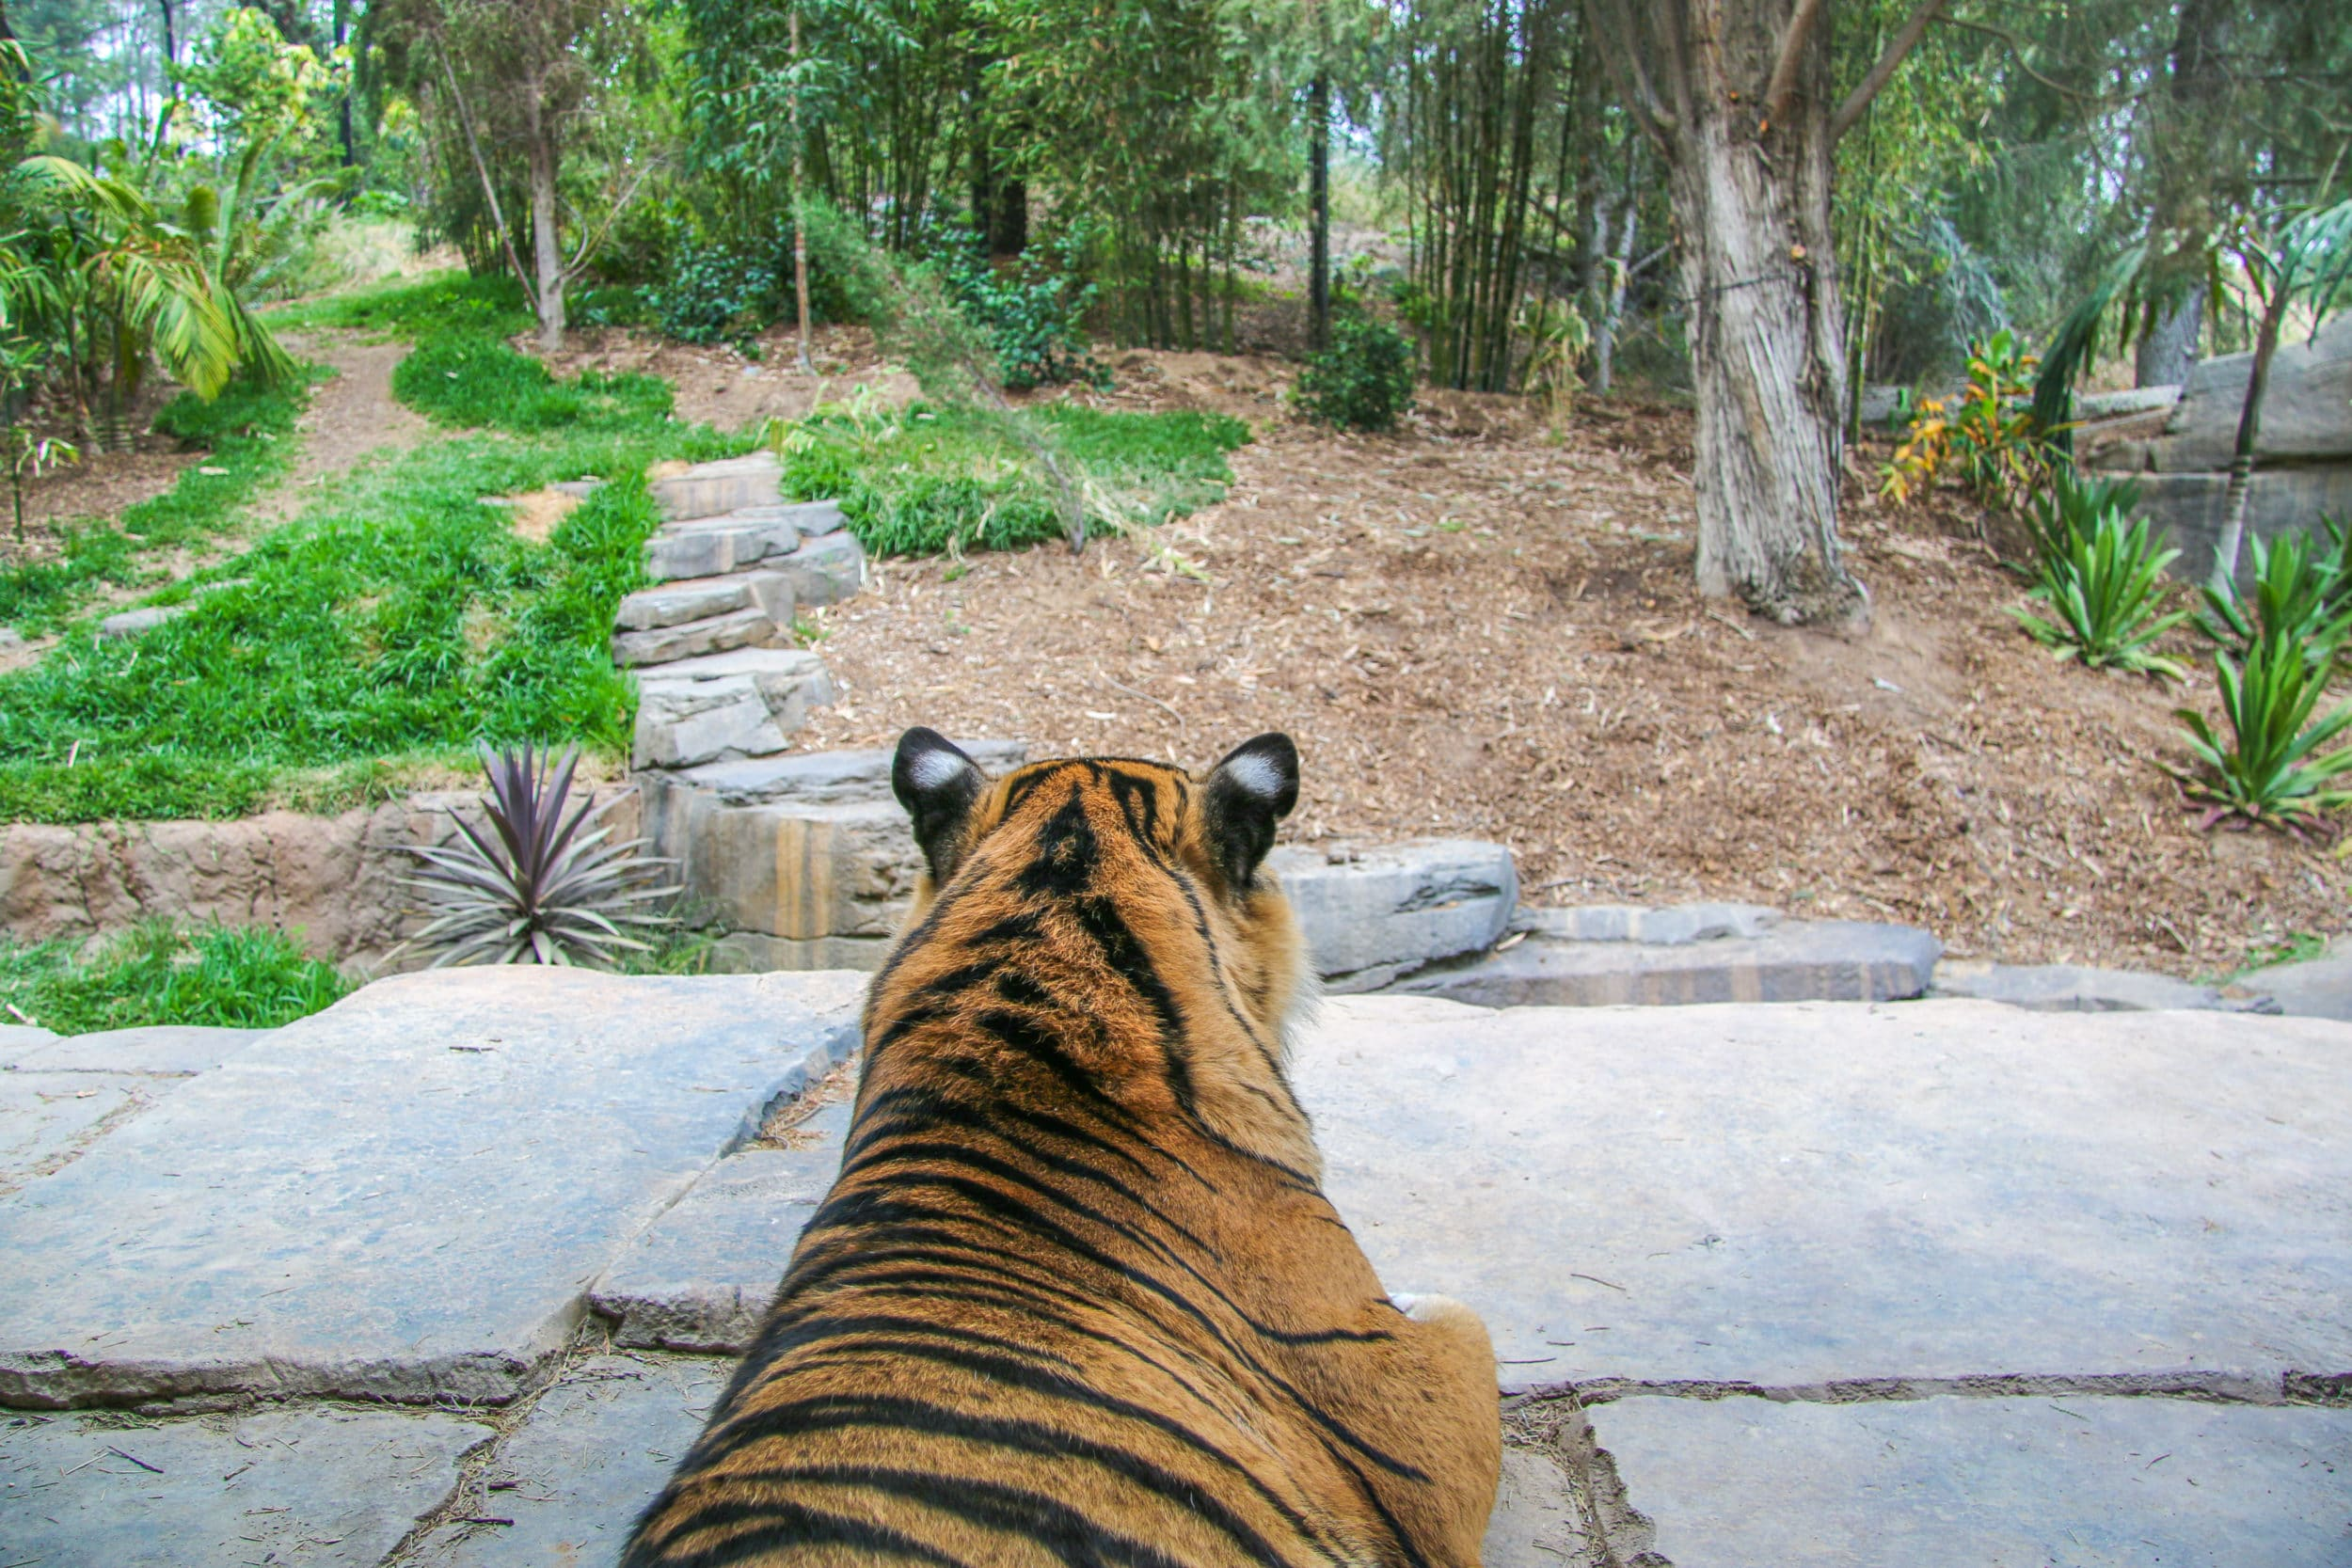 San Diego Zoo Safari Park exhibits include Tiger Trail